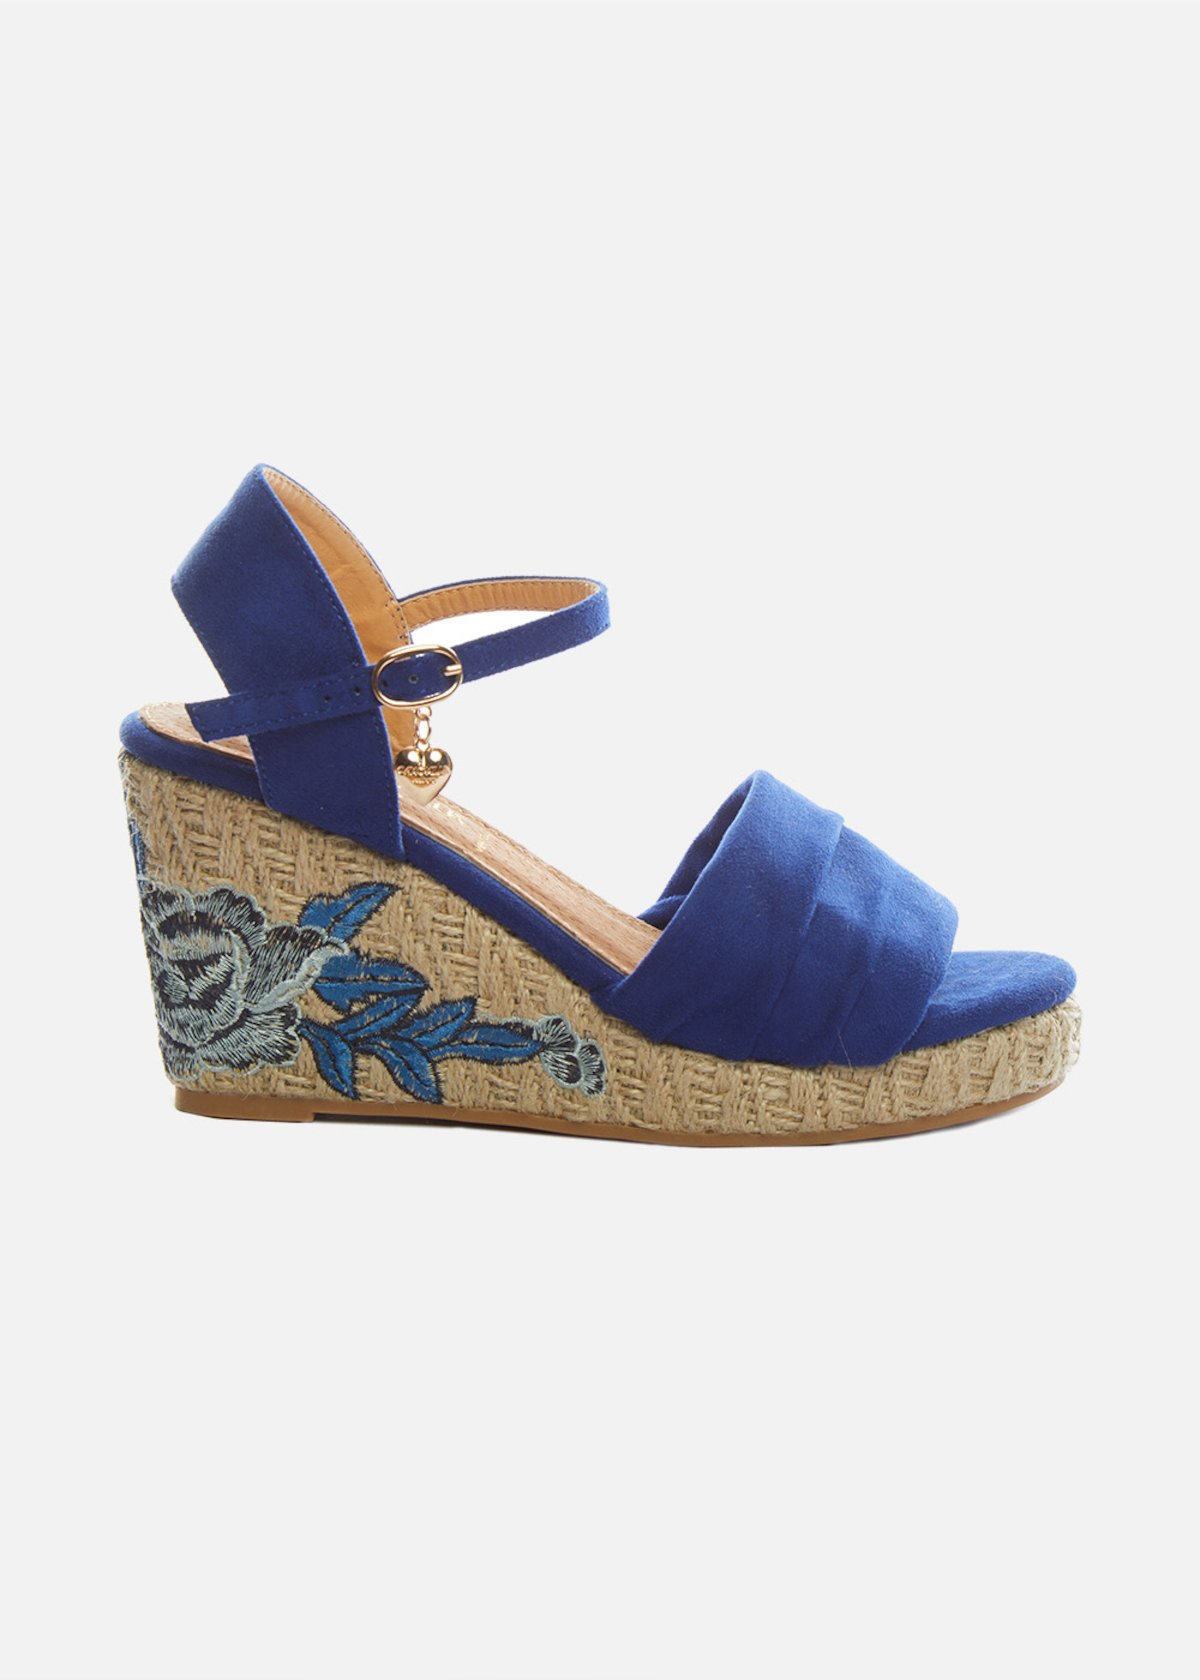 Sembry wedge and floral embroidery sandals - Formentera